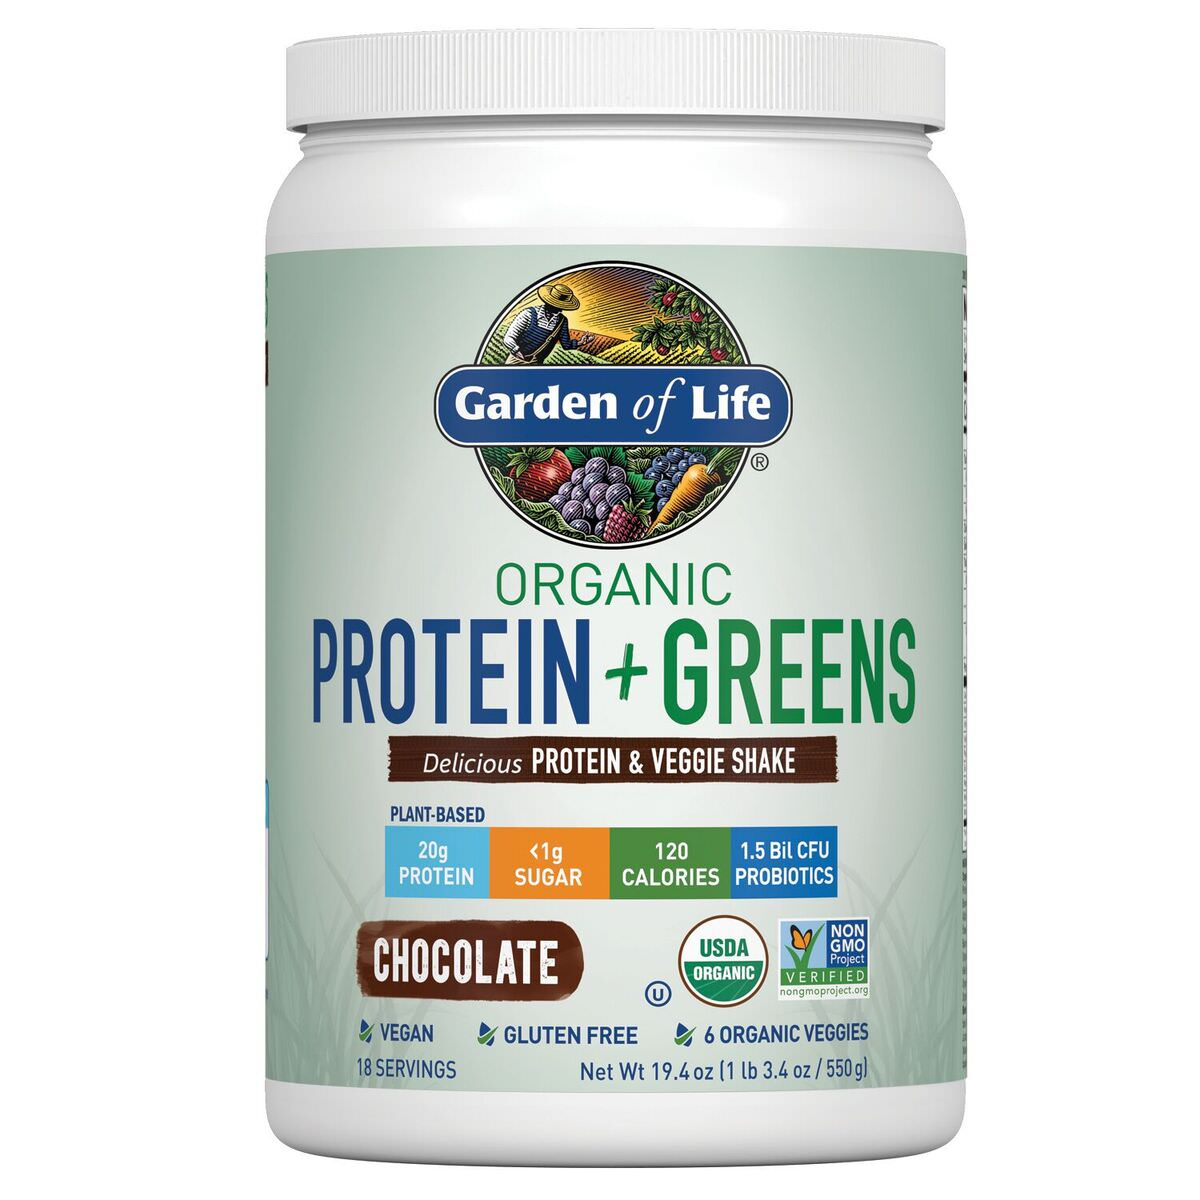 Garden of Life Organic Protein & Greens Powder, Chocolate, 1.2 Lb